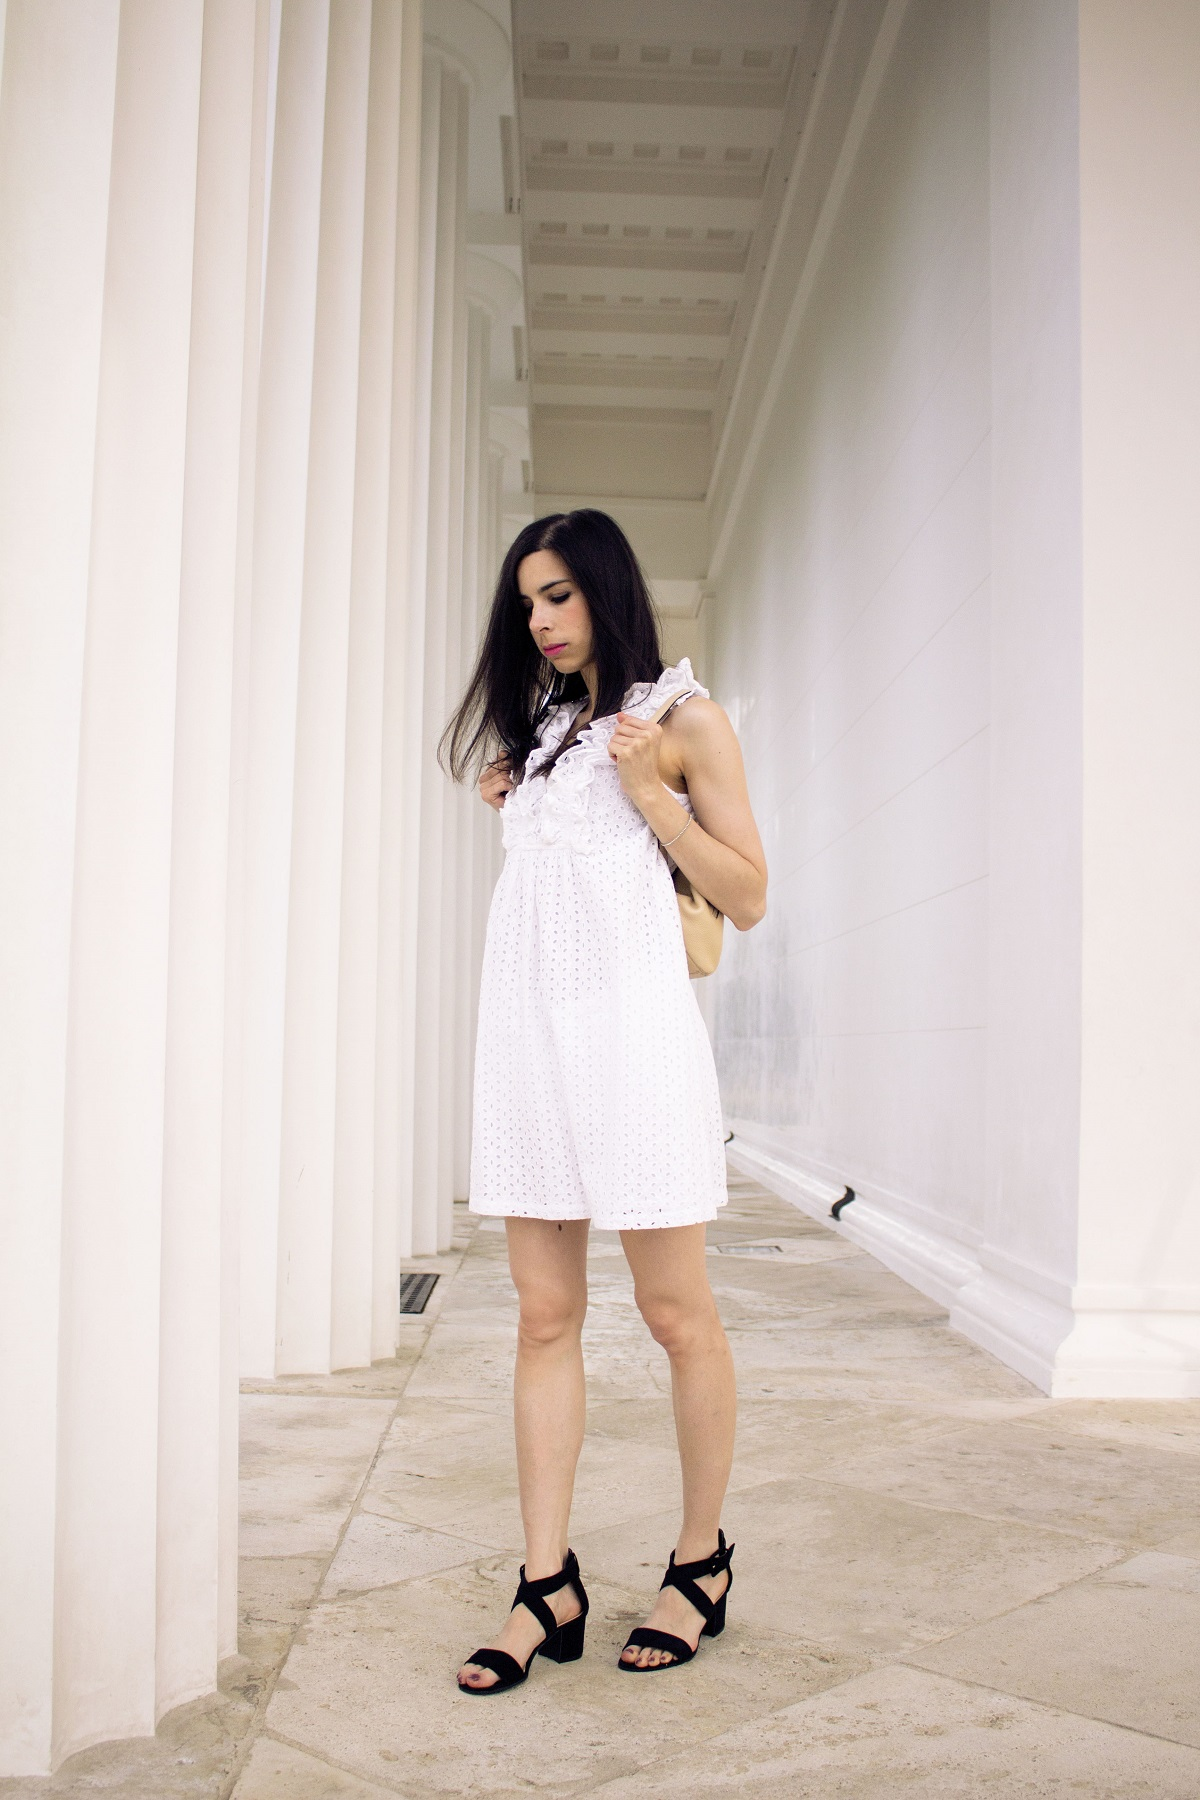 Eyelet-ruffles-white-dress-black-sandals